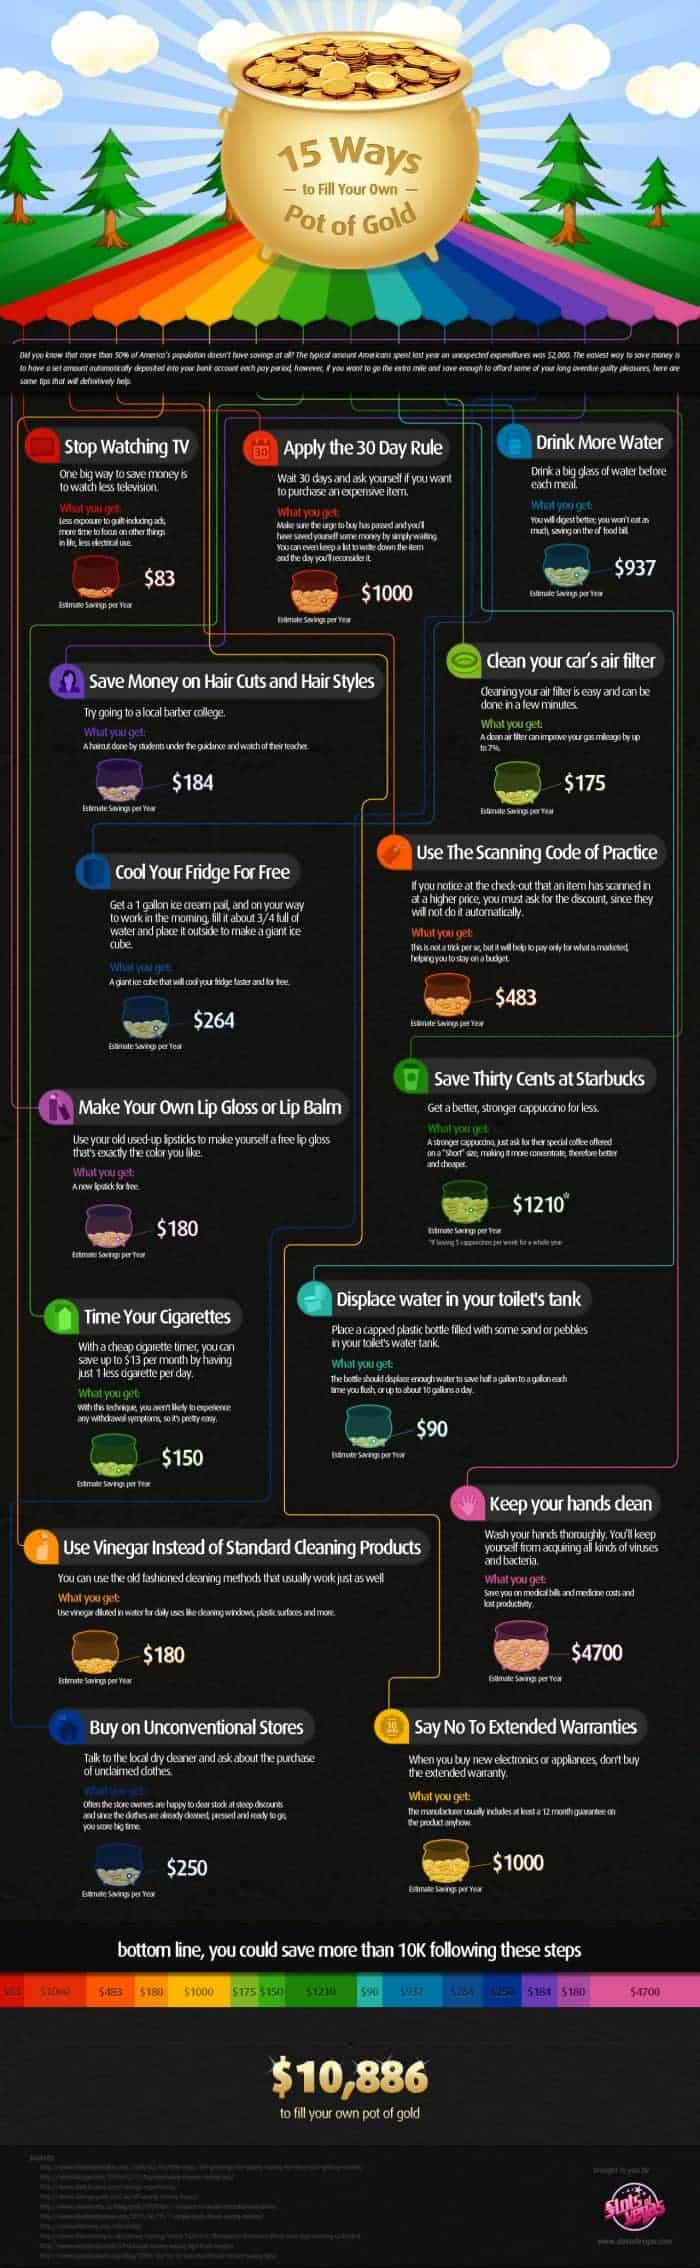 saving-money-infographic